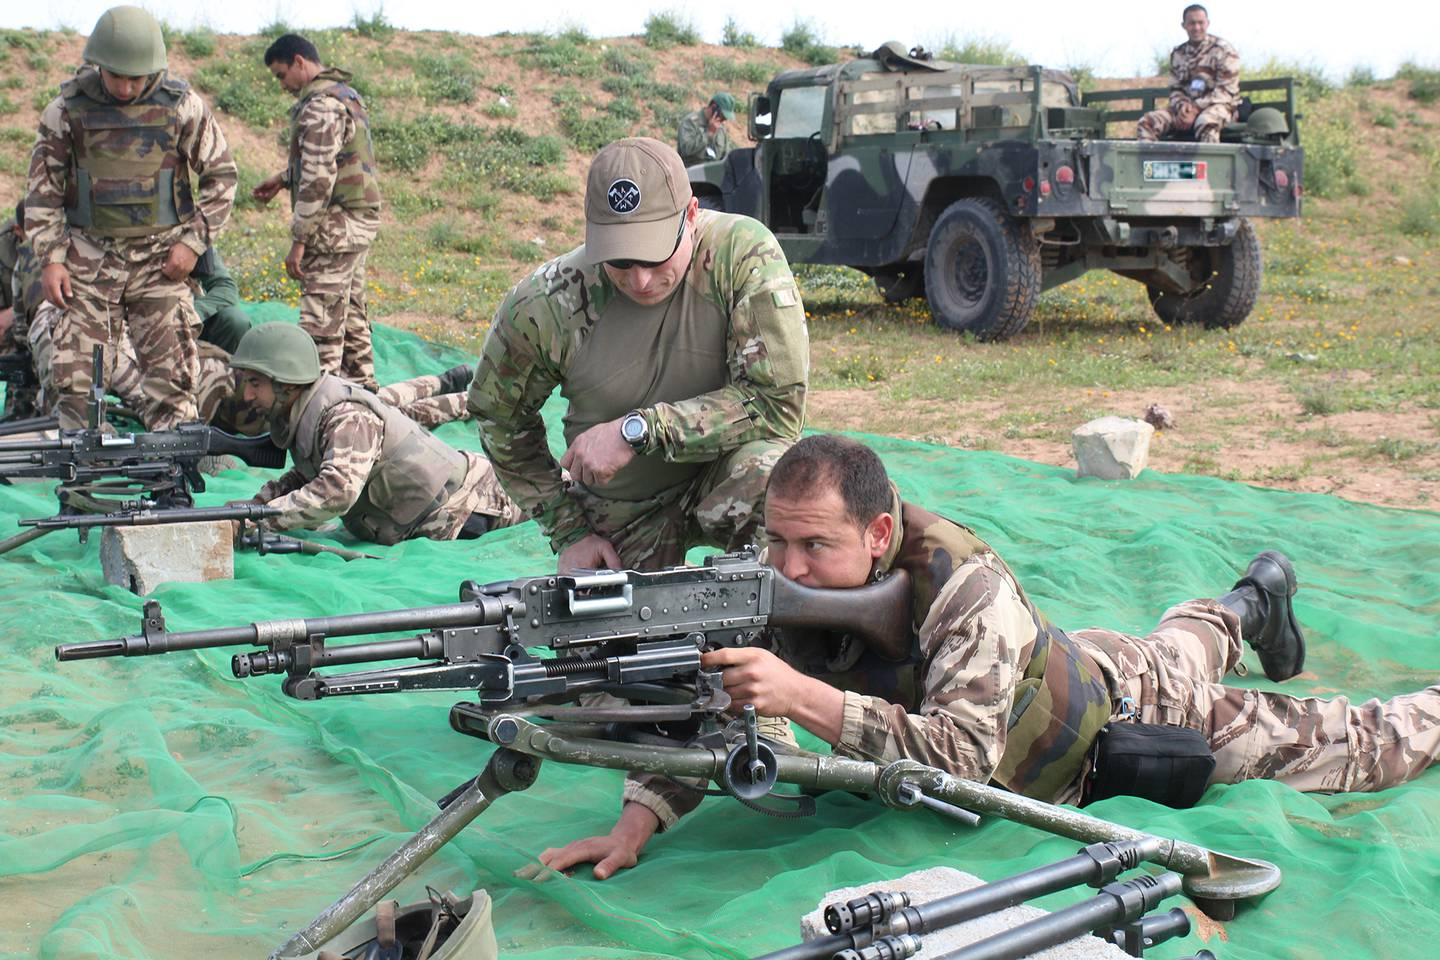 Exercise Flintlock 2017: Live Fire and Maneuver Range training in Morocco